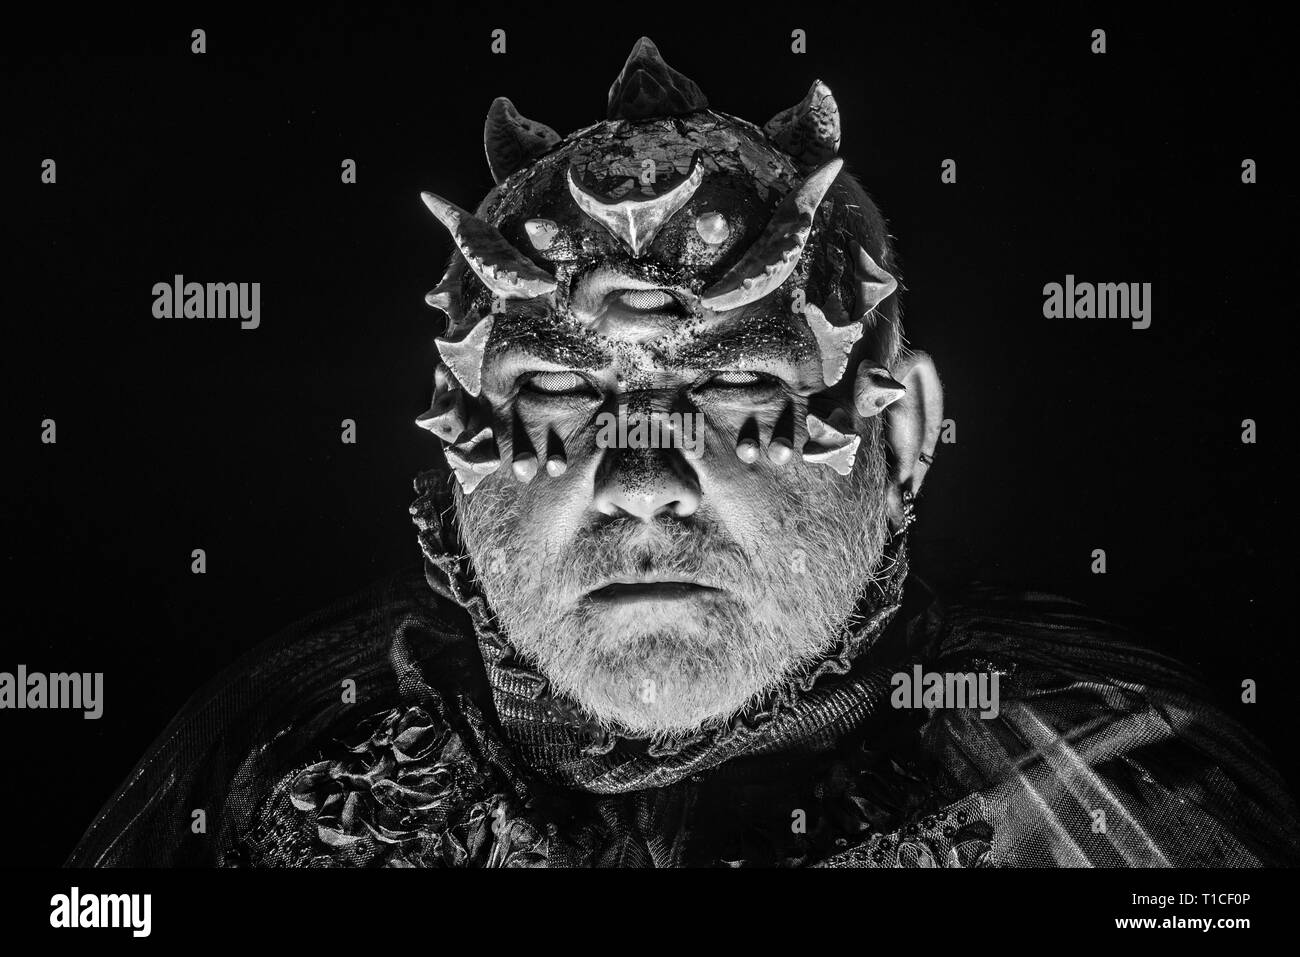 Alien, demon, sorcerer makeup. Horror and fantasy concept. Man with third eye, thorns or warts. Demon on black background, close up. Senior man with - Stock Image